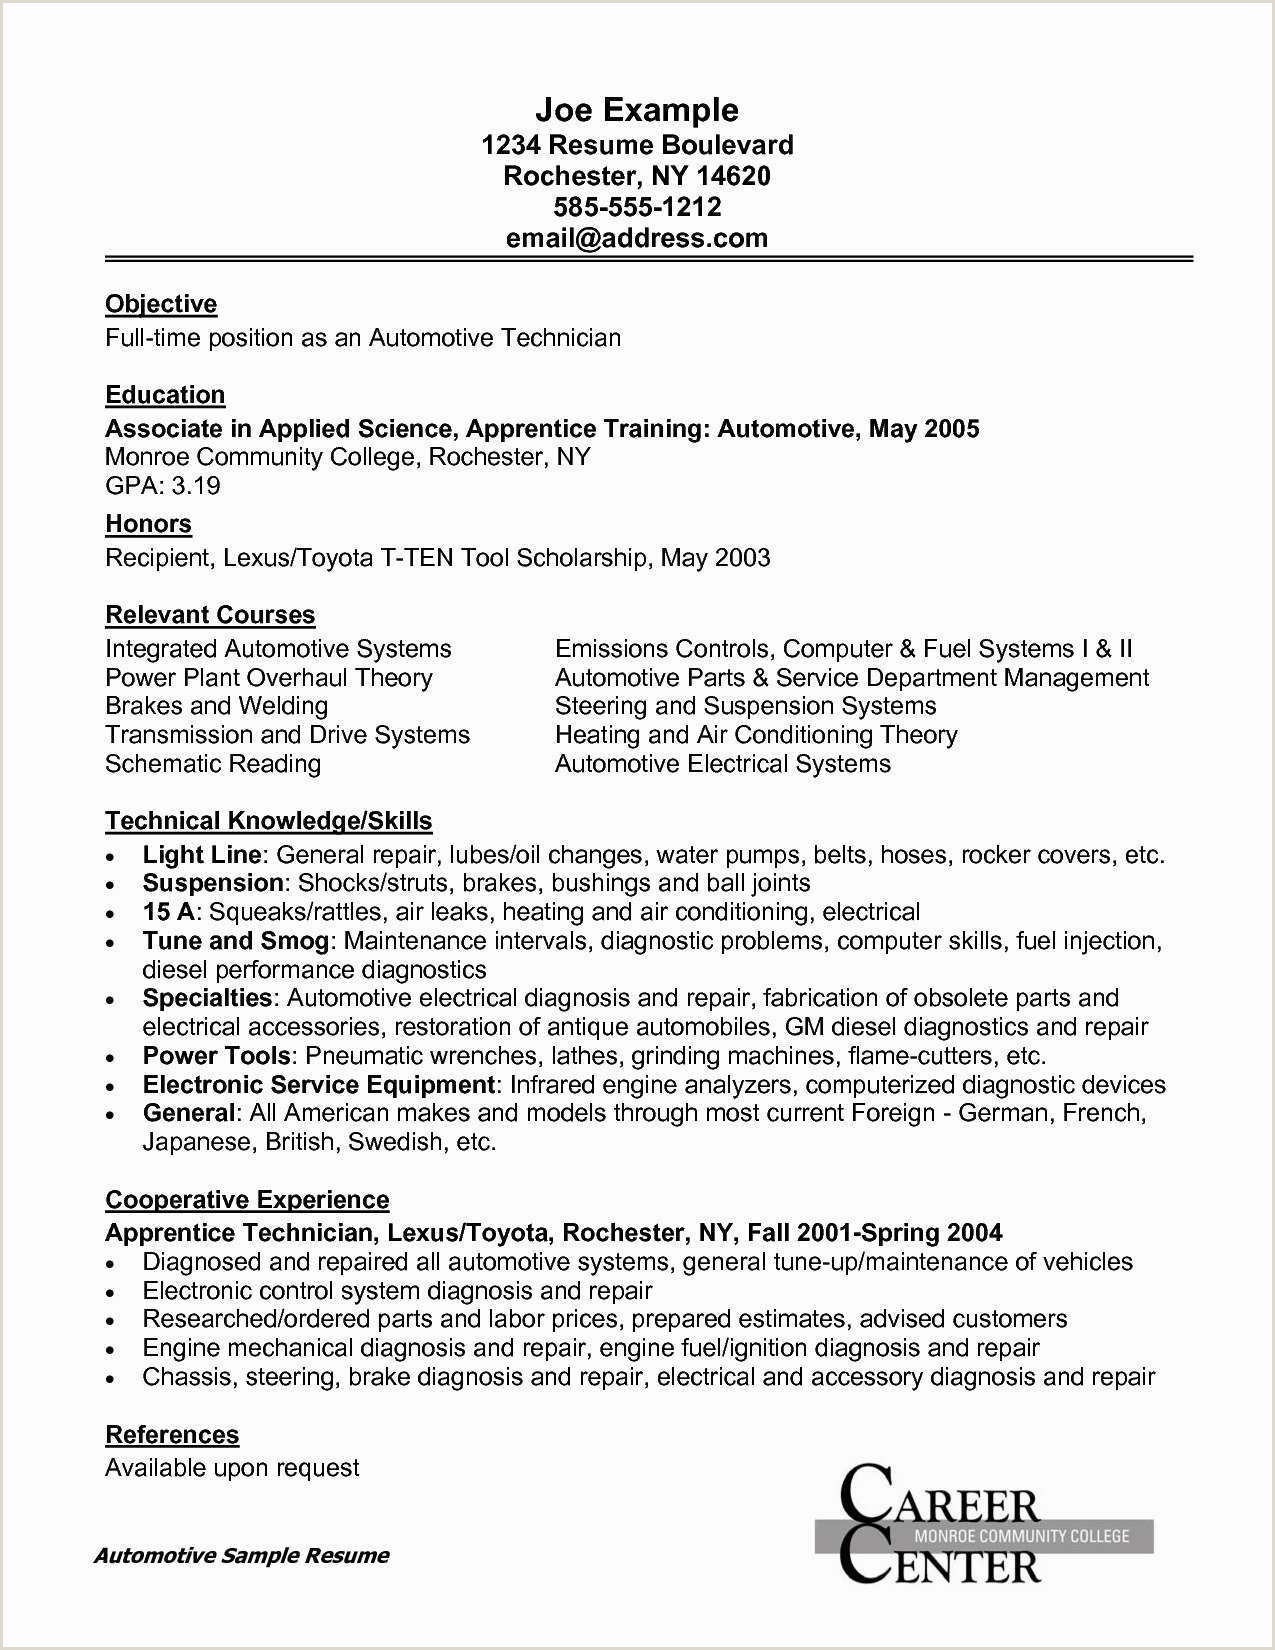 Electrician Apprentice Job Description Resume 9 Automotive Job Resume Examples